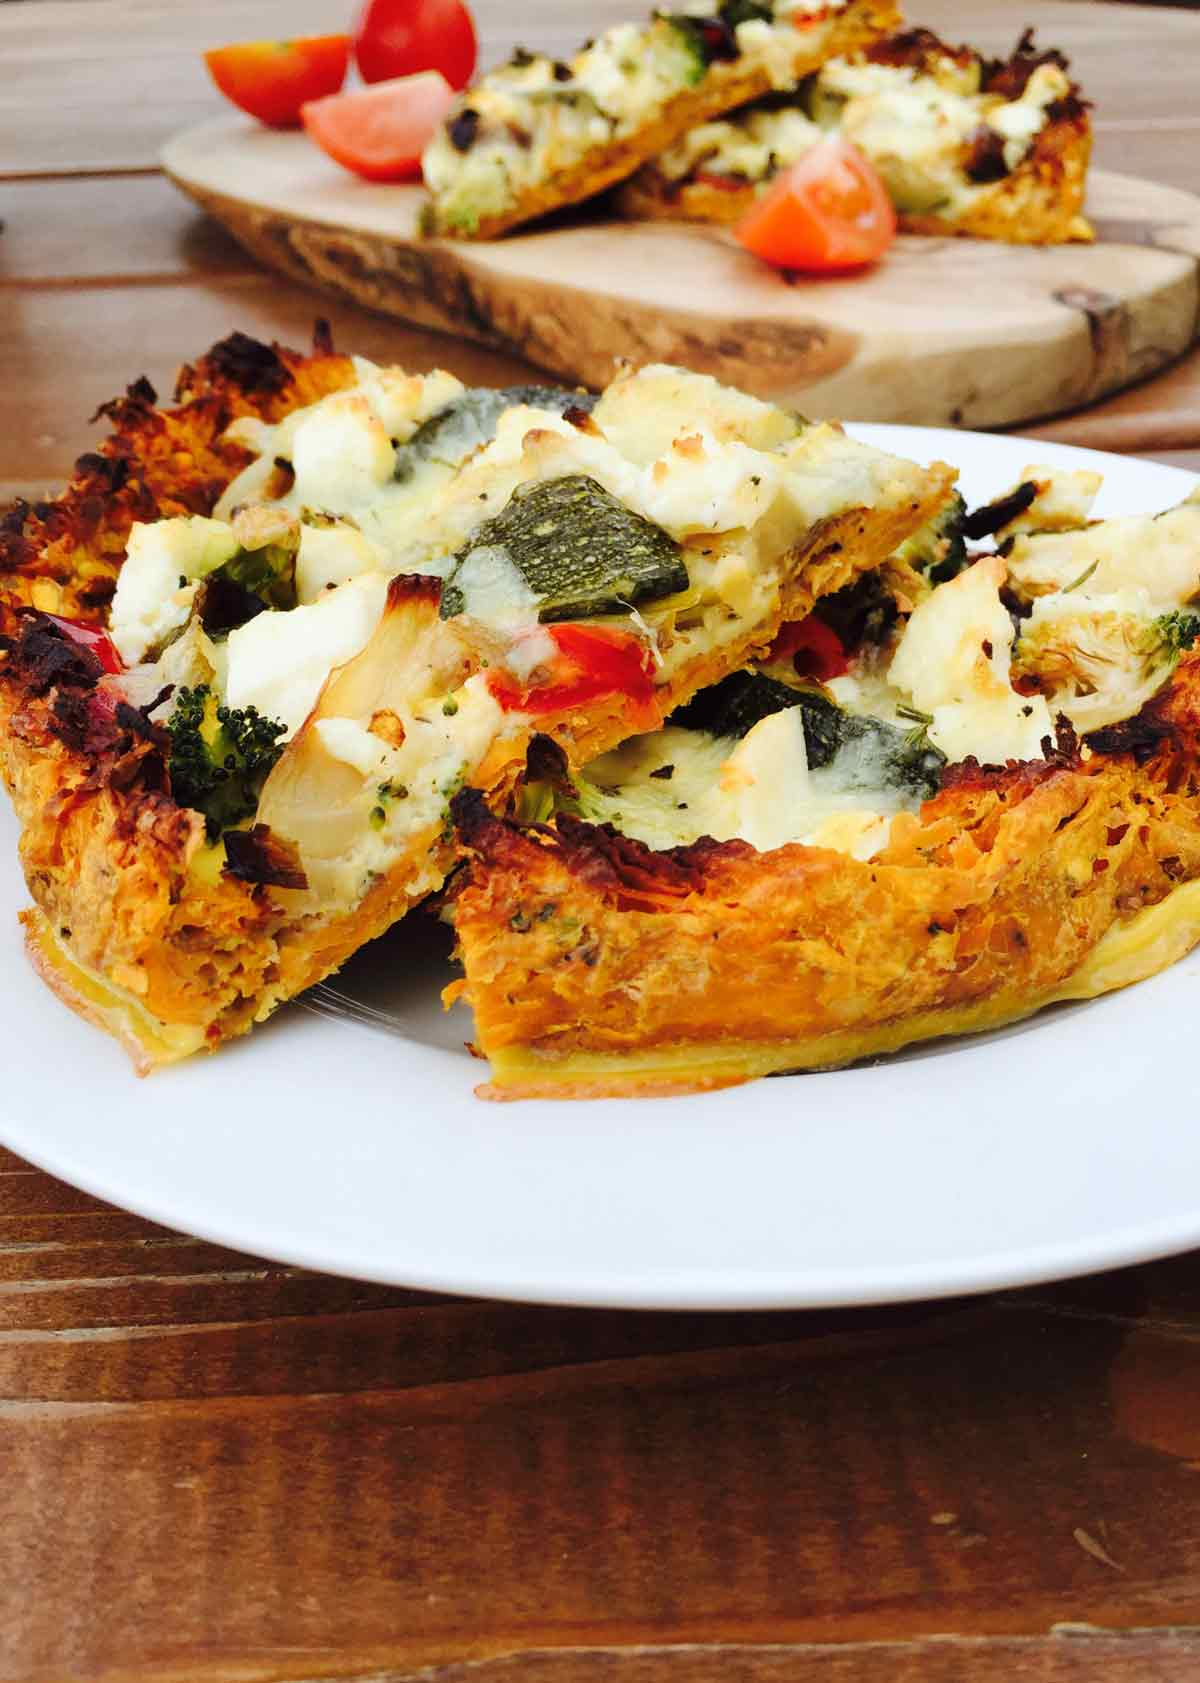 Enjoy a scrumptious no-dough veggie pizza, a low carb vegetable dish full of flavors and a fast feast to prepare.